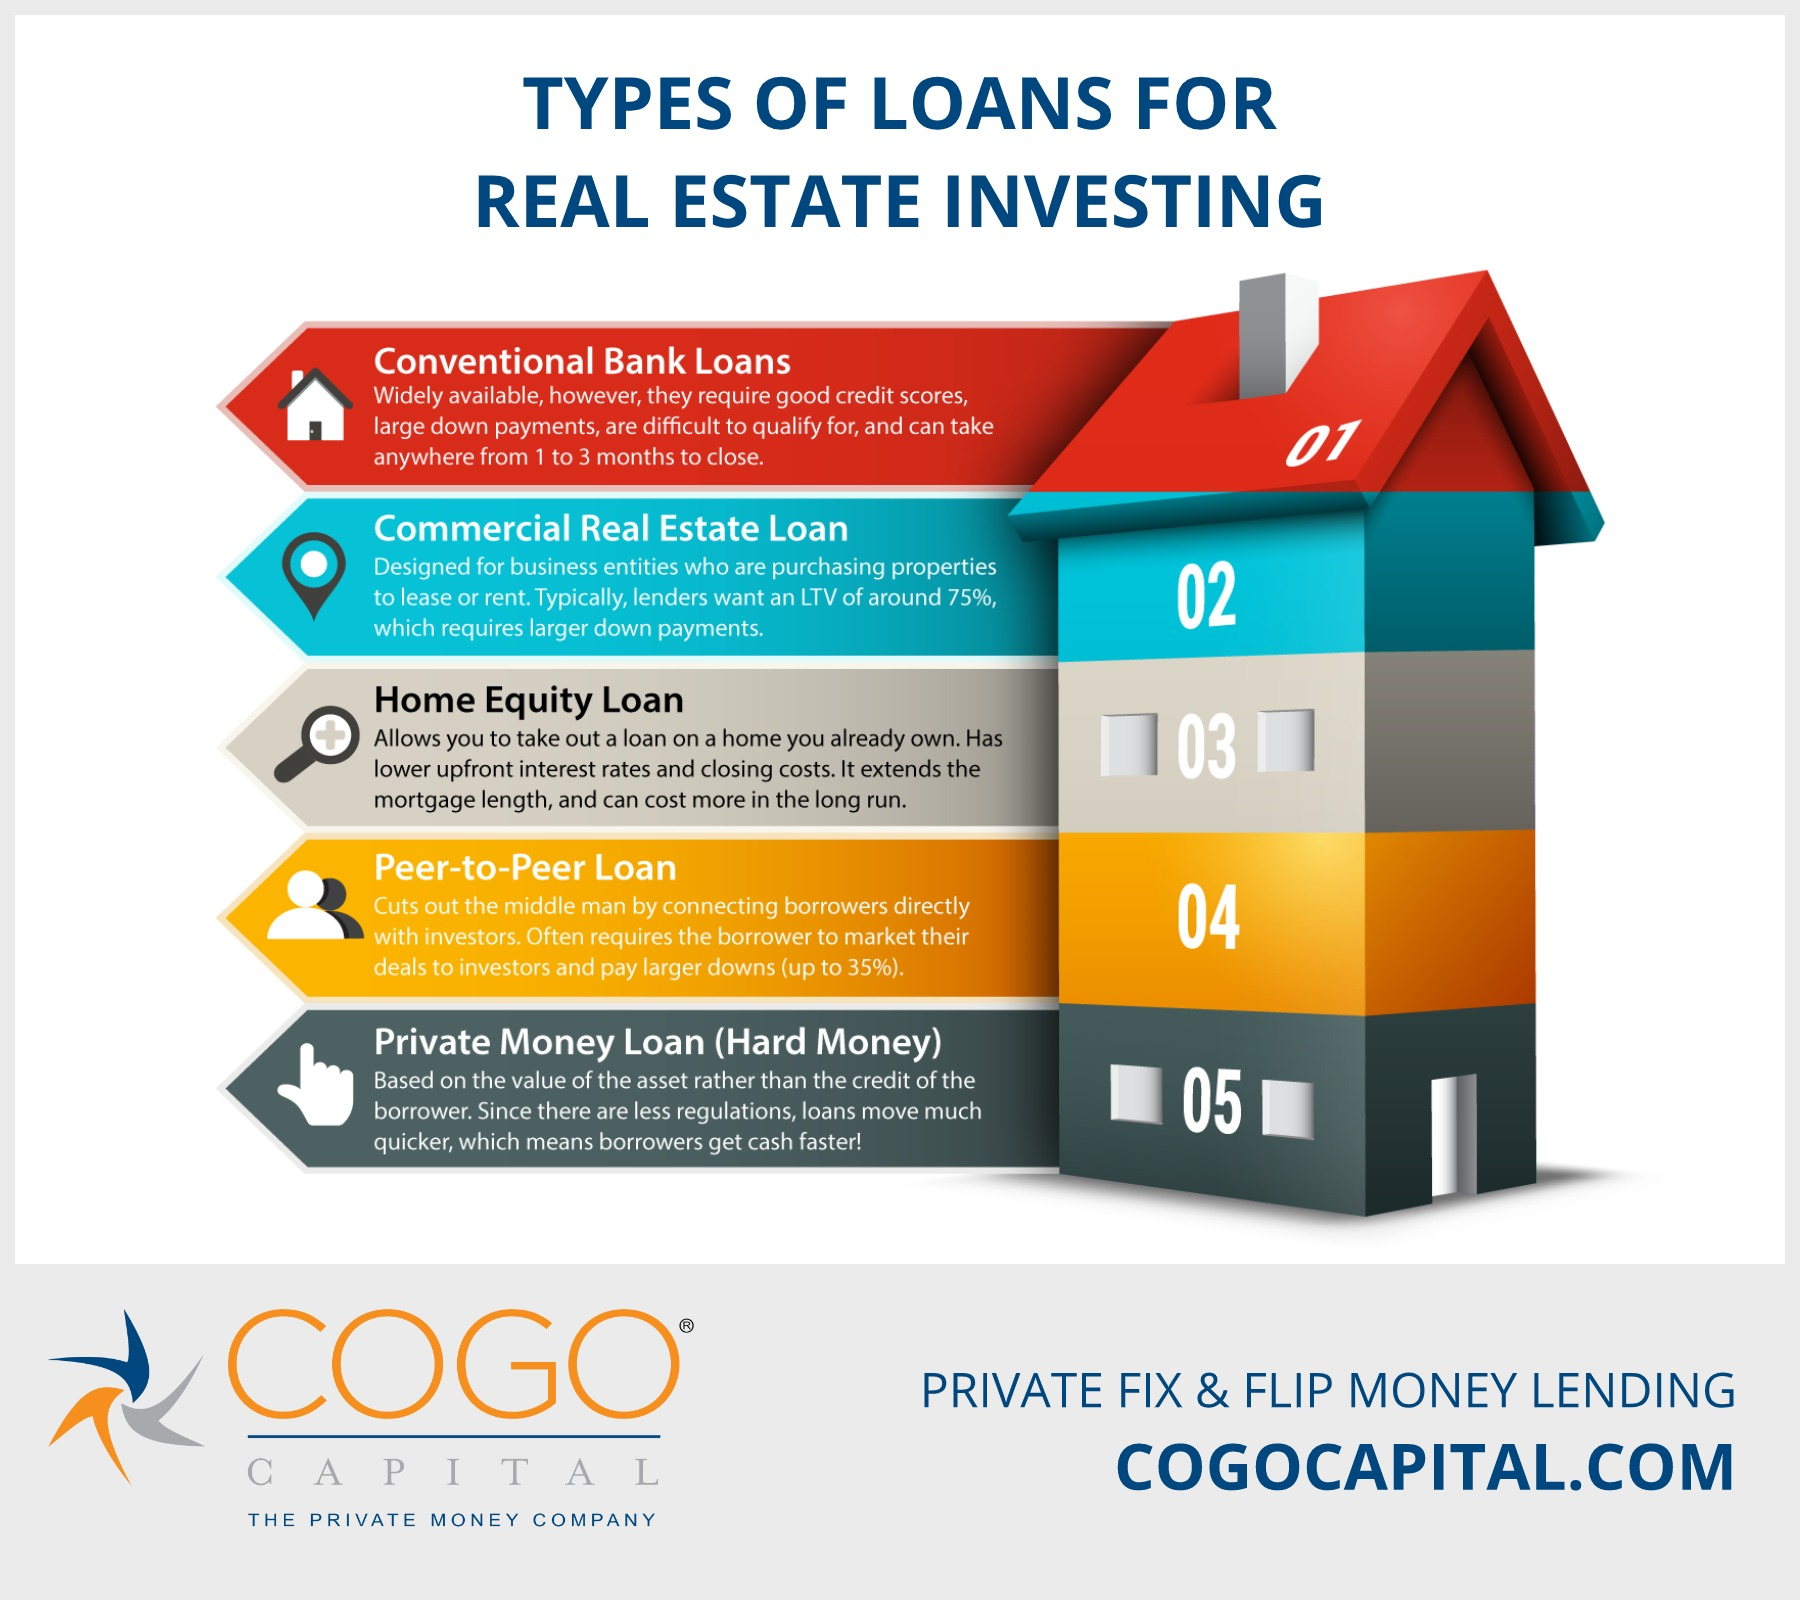 Types of Real Estate Investment Loans